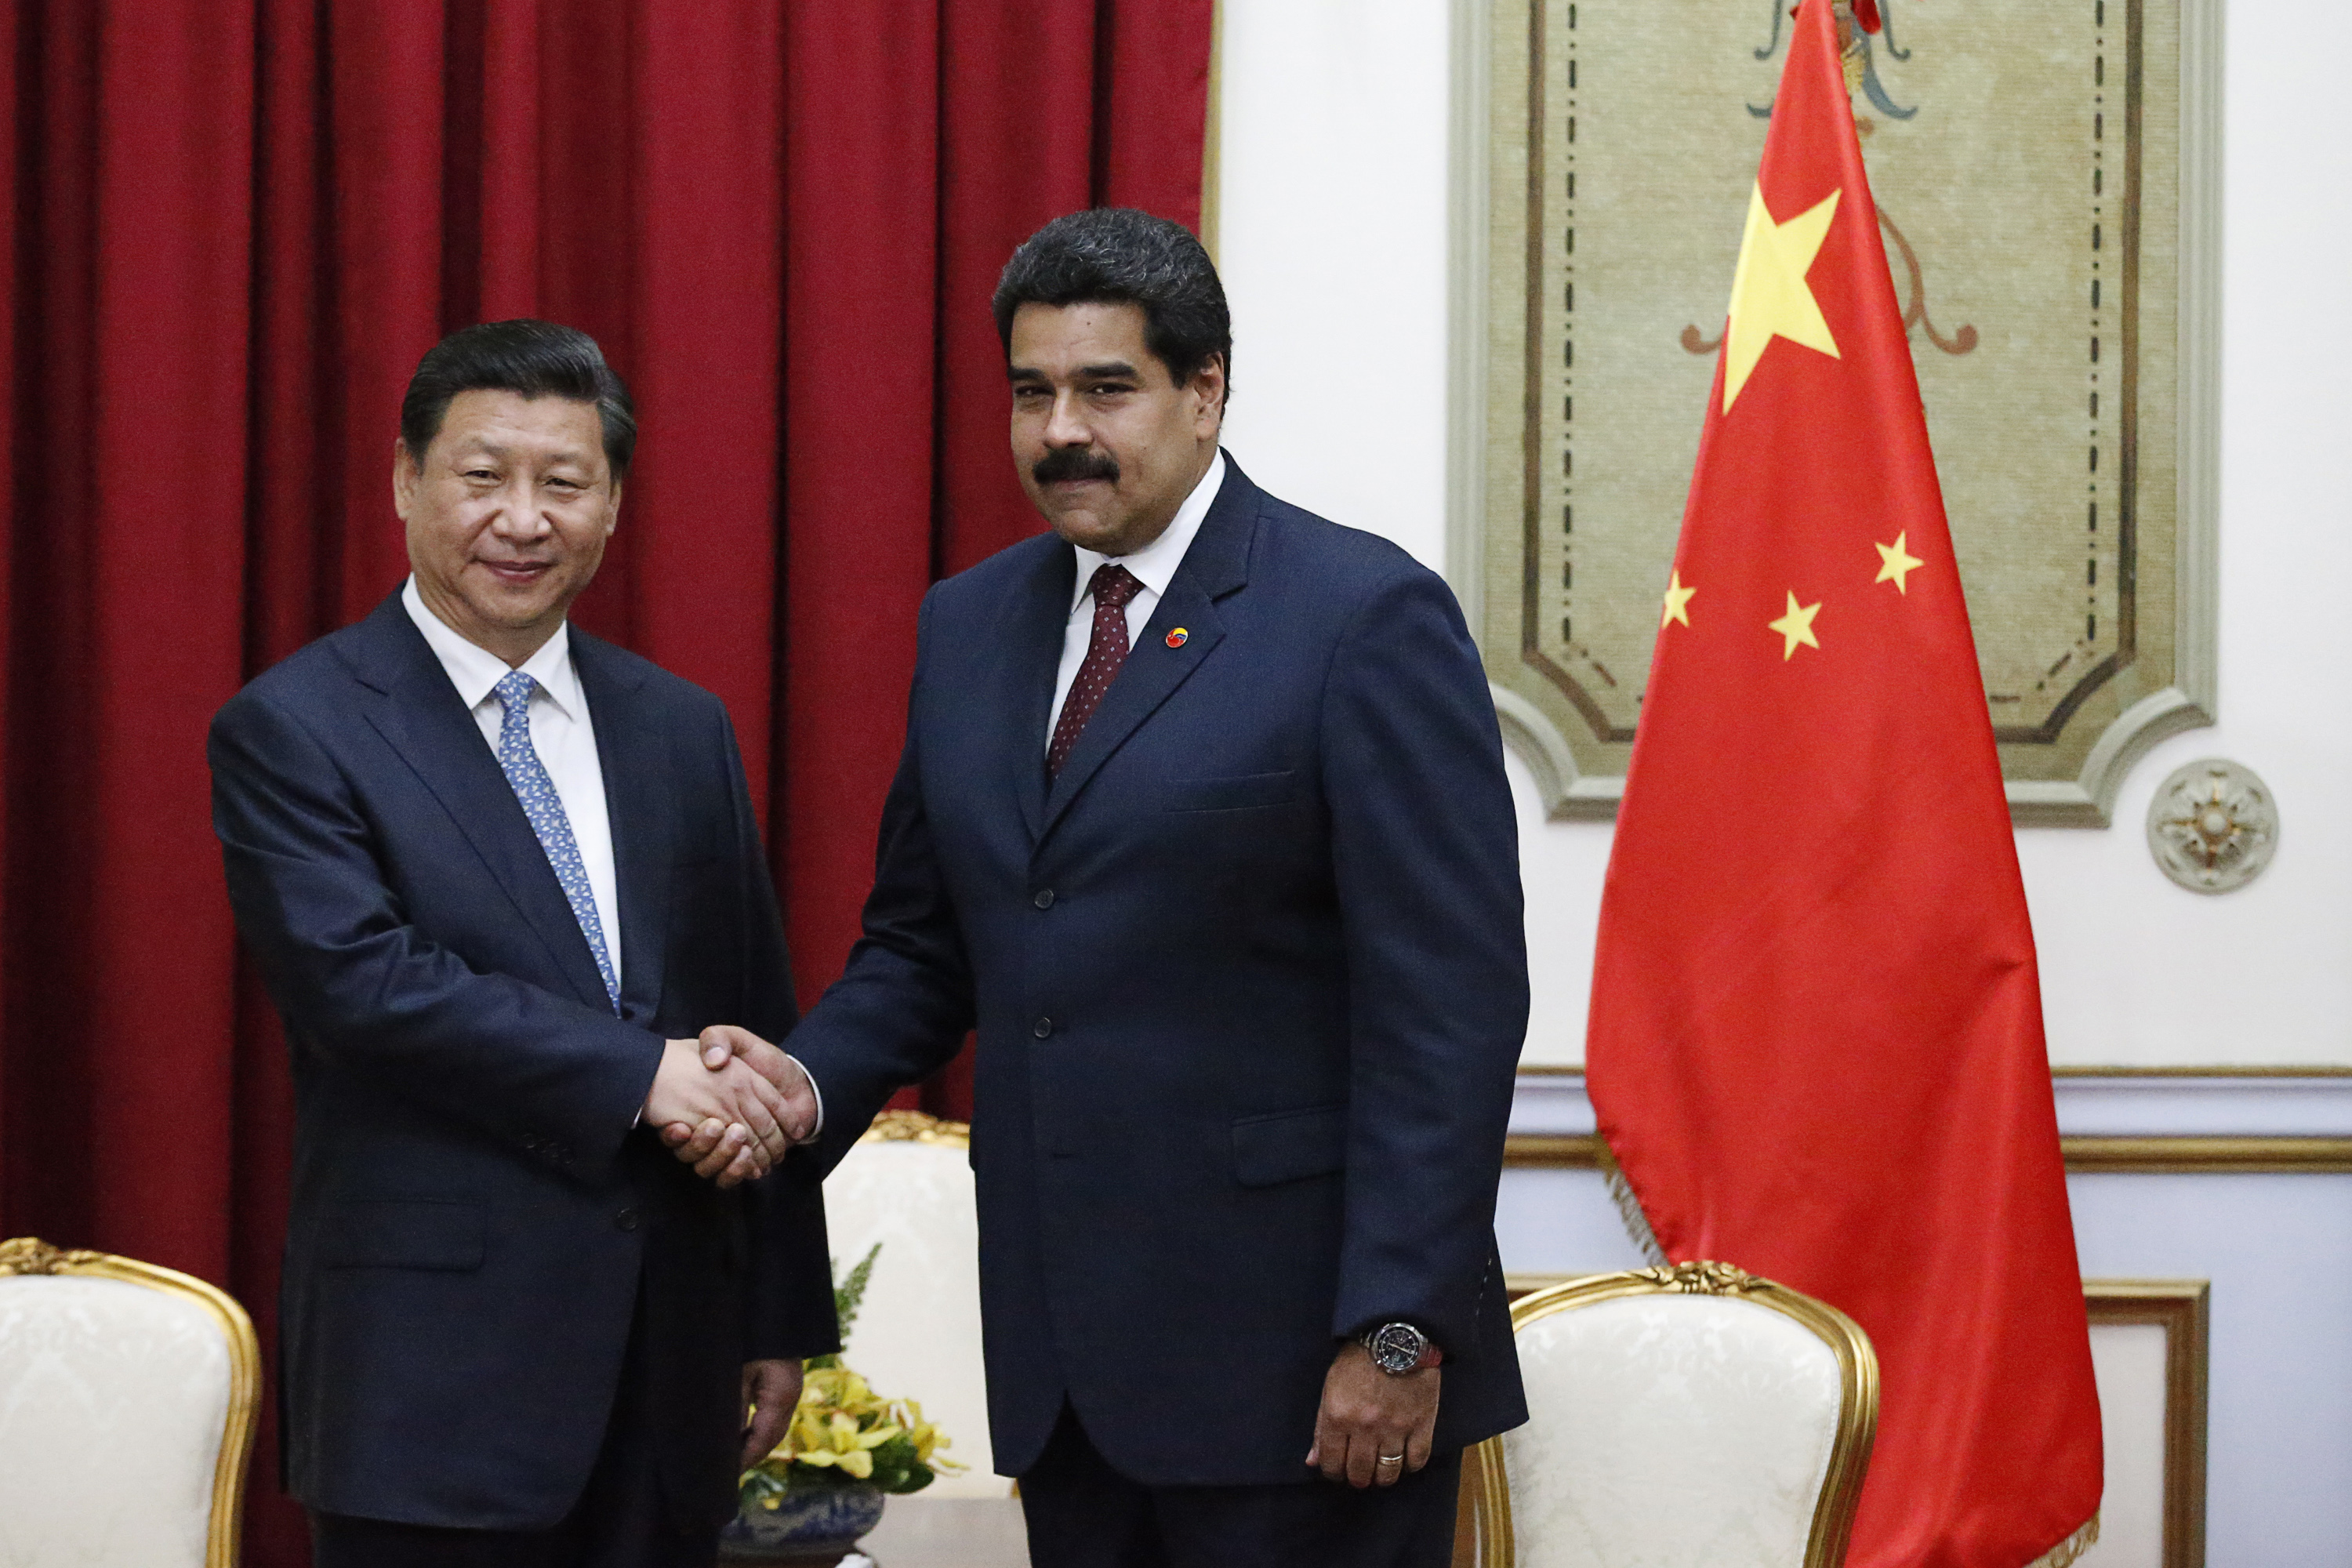 China's President Xi Jinping (L) shakes hands with Venezuela's President Nicolas Maduro at a meeting in Miraflores Palace in Caracas July 20, 2014. REUTERS/Jorge Silva (VENEZUELA - Tags: POLITICS) - RTR3ZG6I